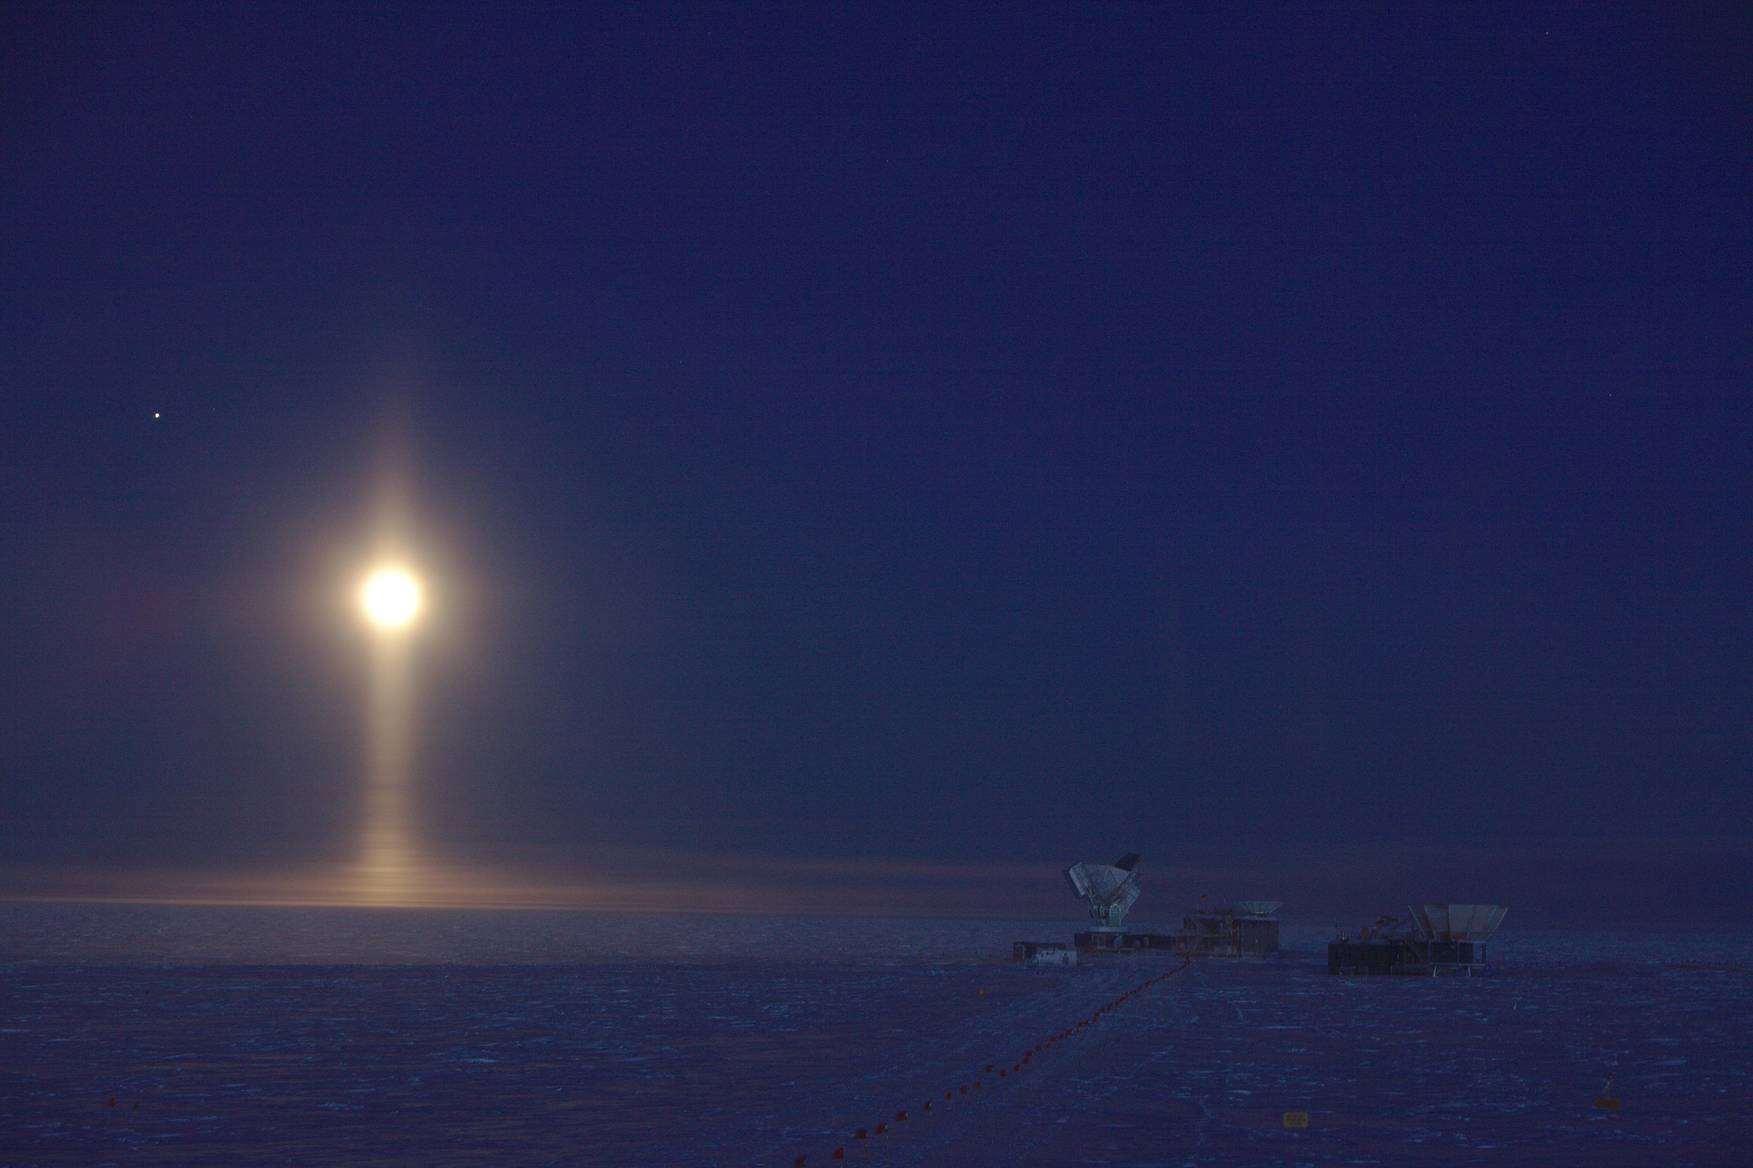 April 2017: The South Pole Telescope during EHT observations. Ice crystals in the atmosphere create a light pillar underneath the Full Moon. The bright speck left of the Moon is Jupiter.